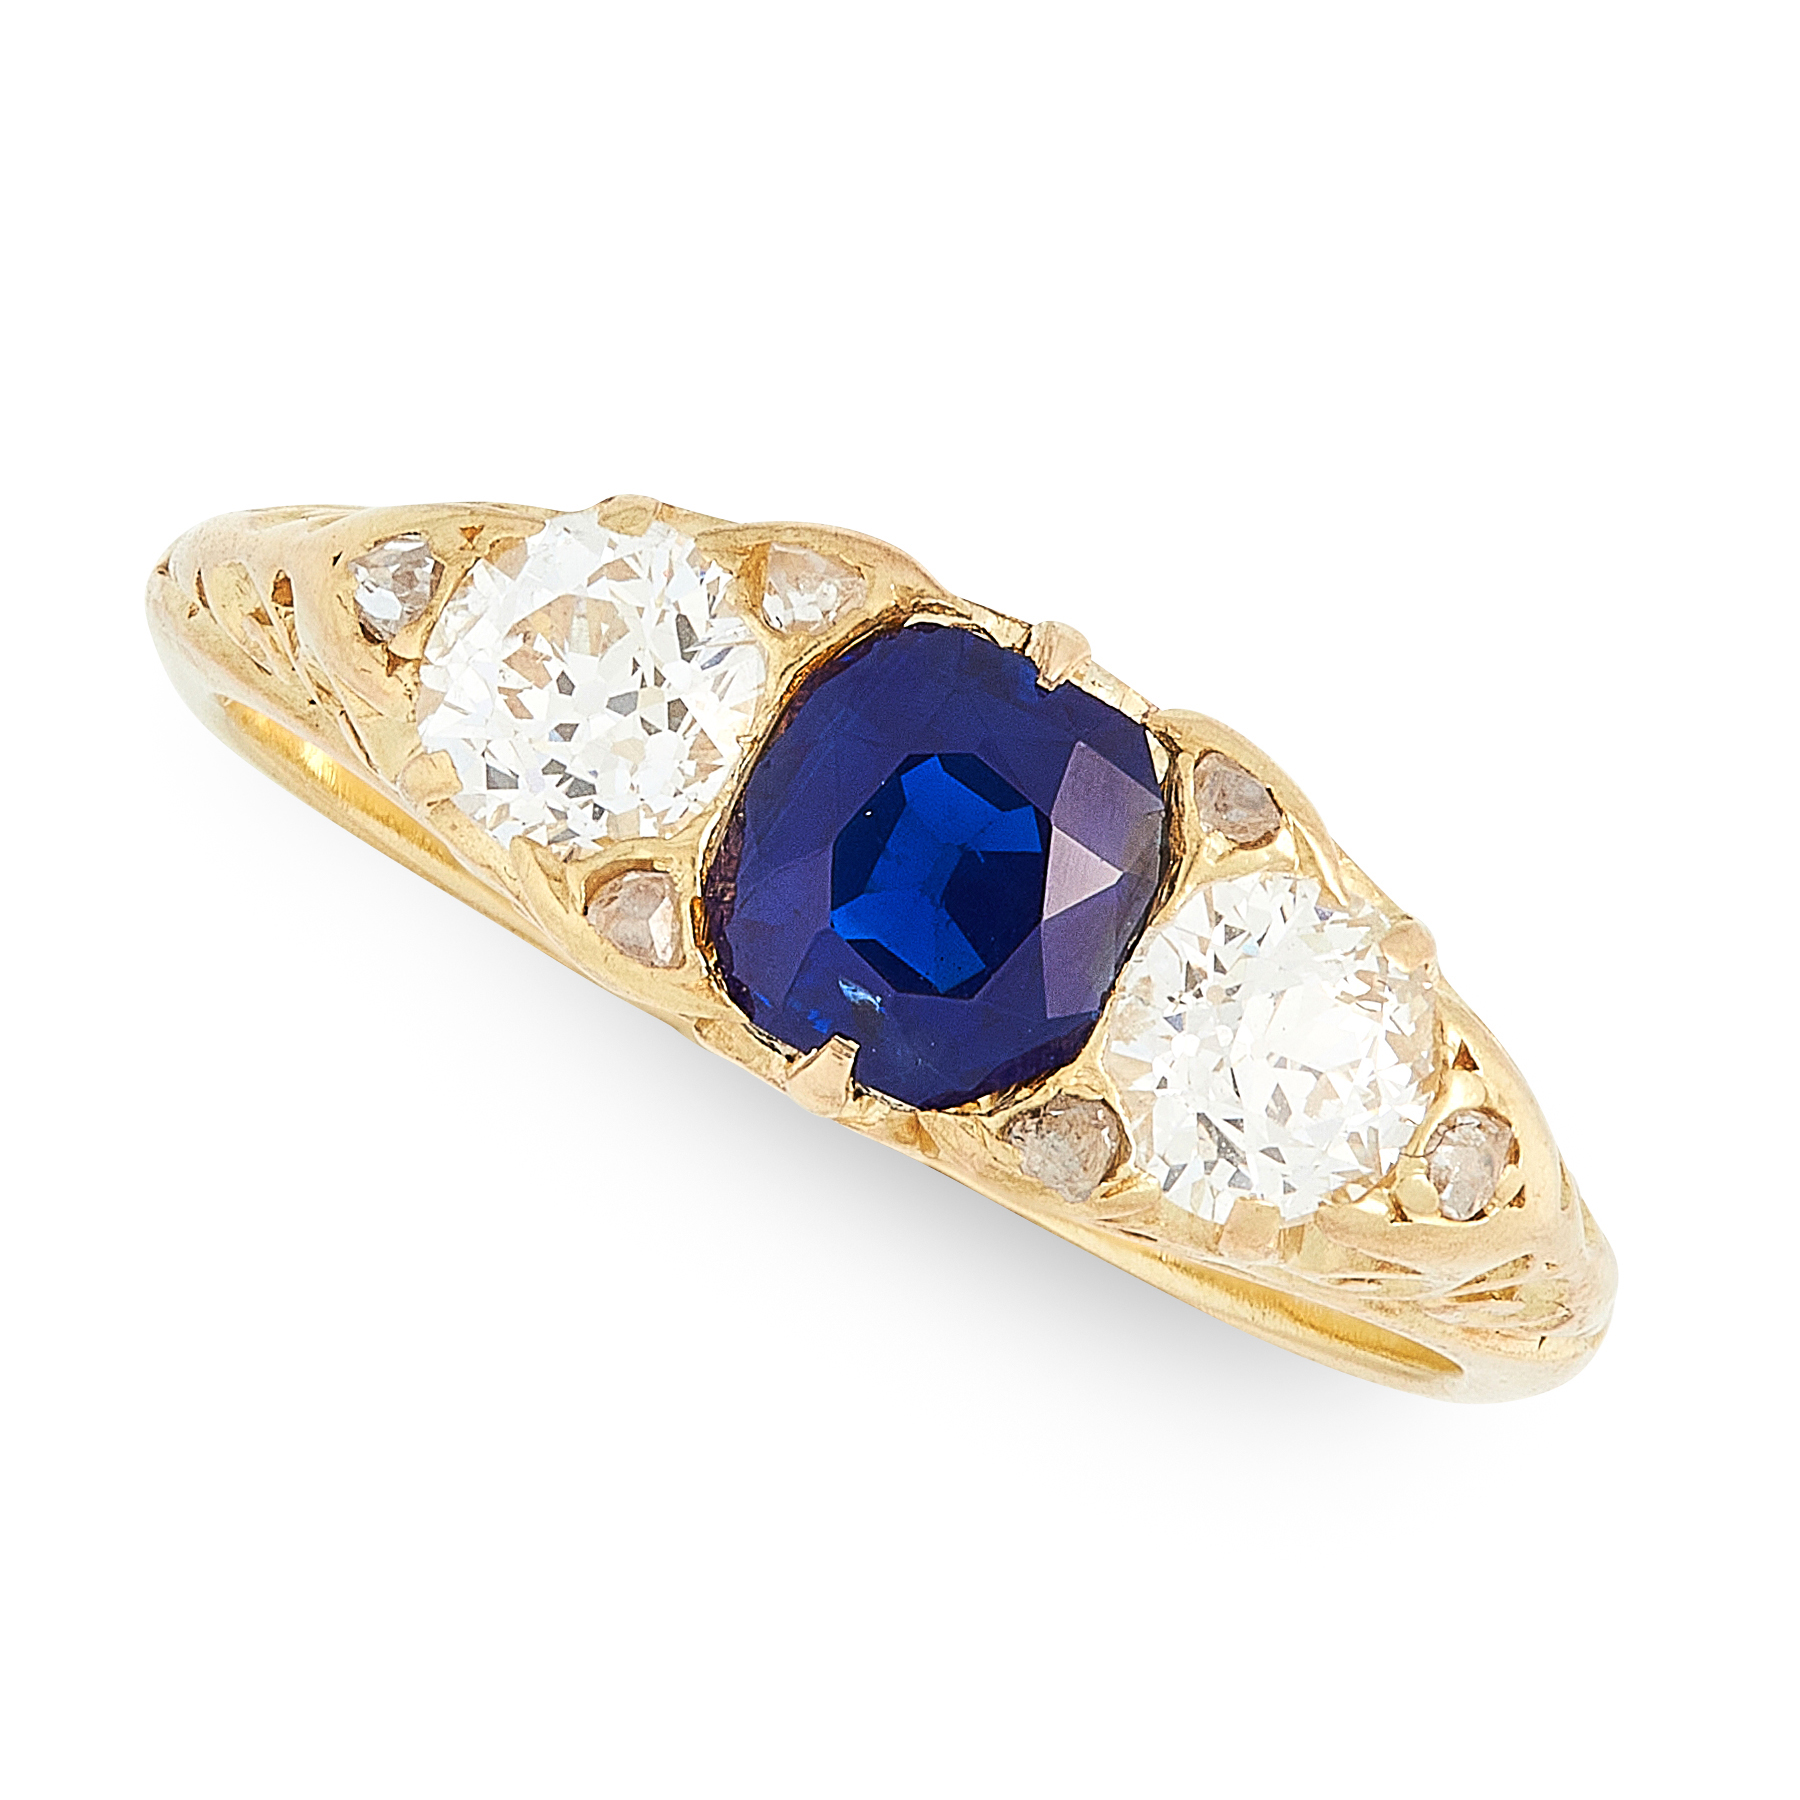 AN ANTIQUE SAPPHIRE AND DIAMOND RING, CIRCA 1900 in high carat yellow gold, set with a cushion cut